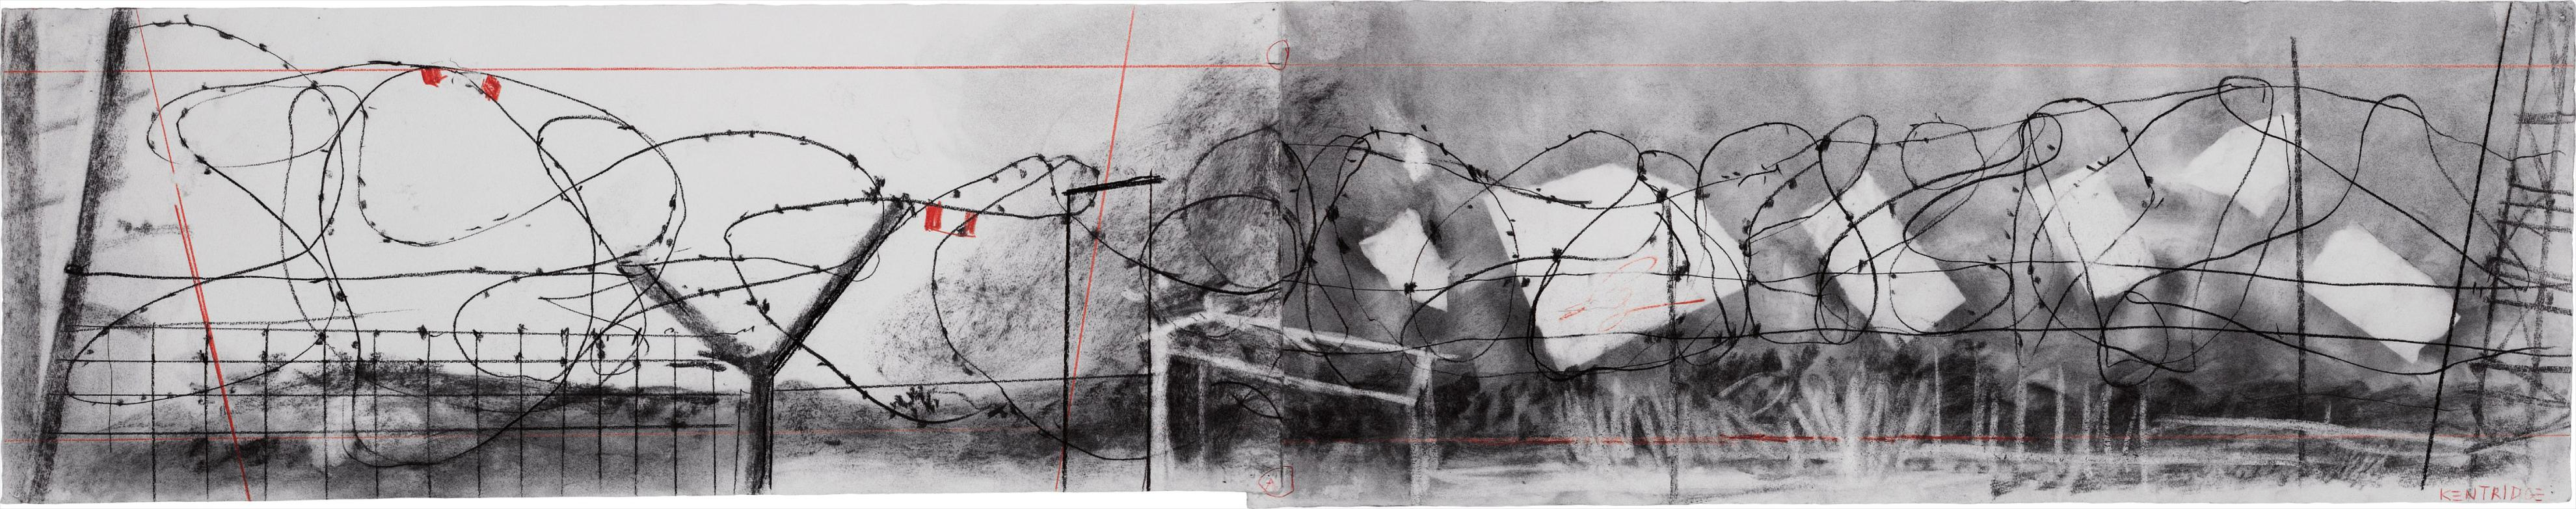 William Kentridge-Drawing For Other Faces-2011